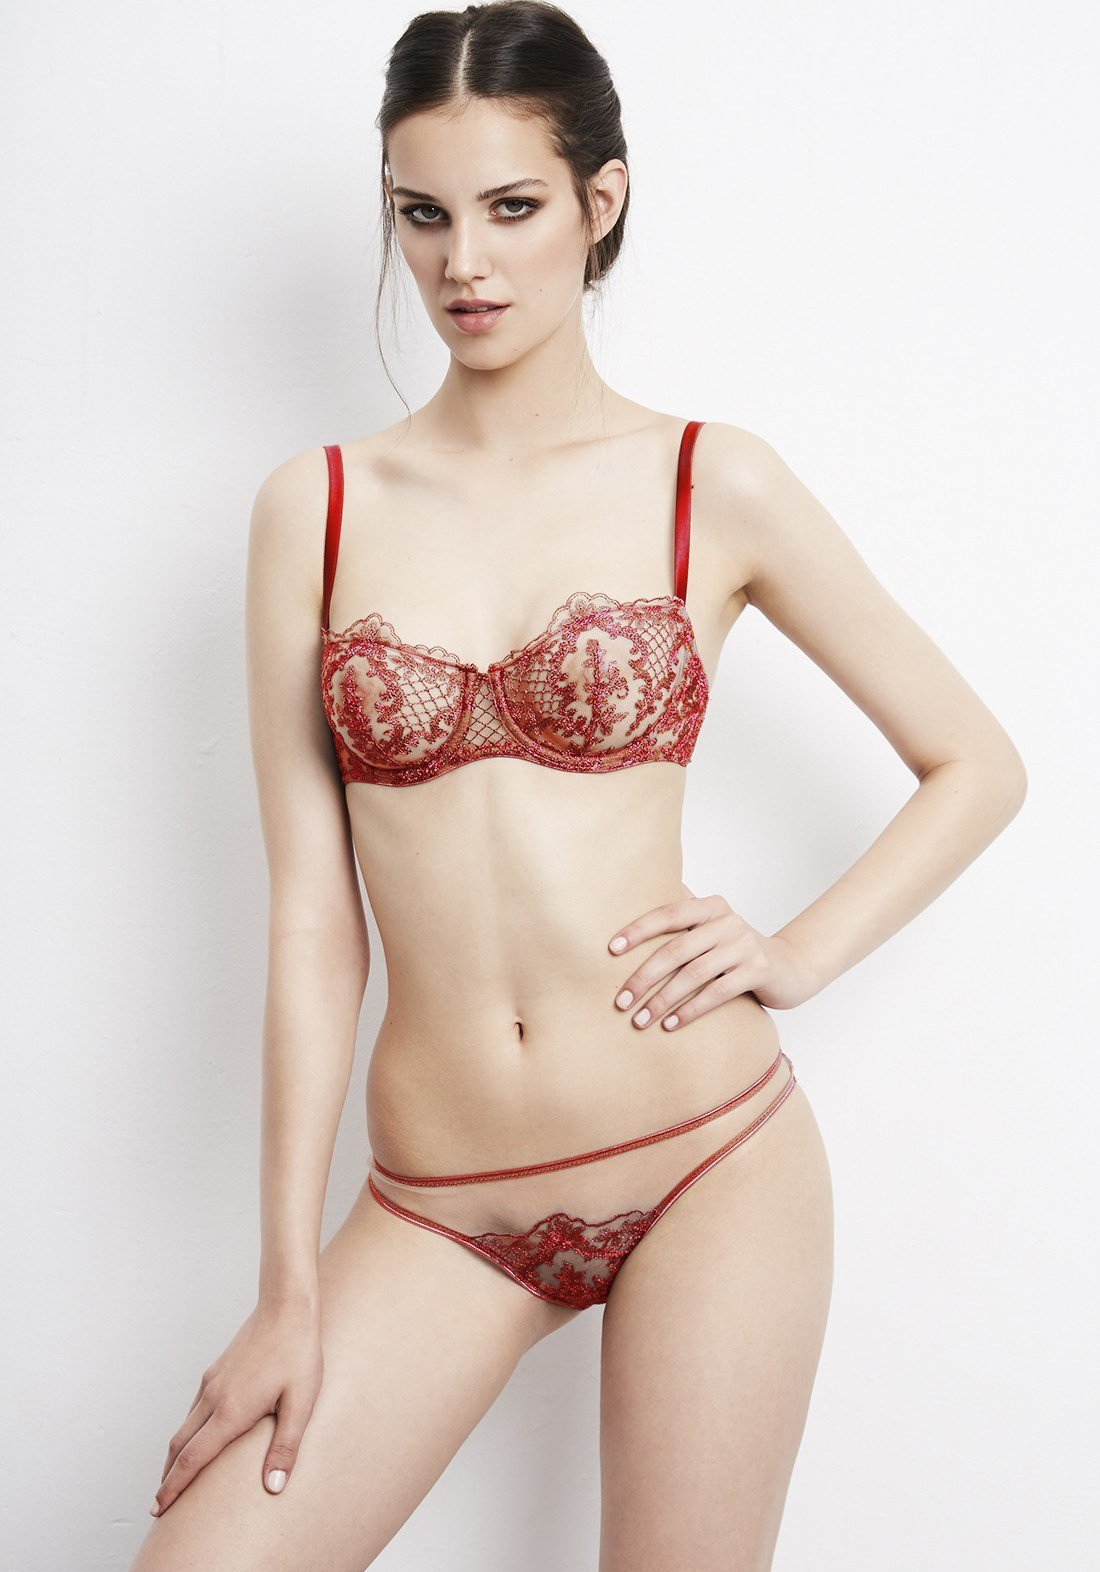 Accord Privé Low Waist Brief in Red